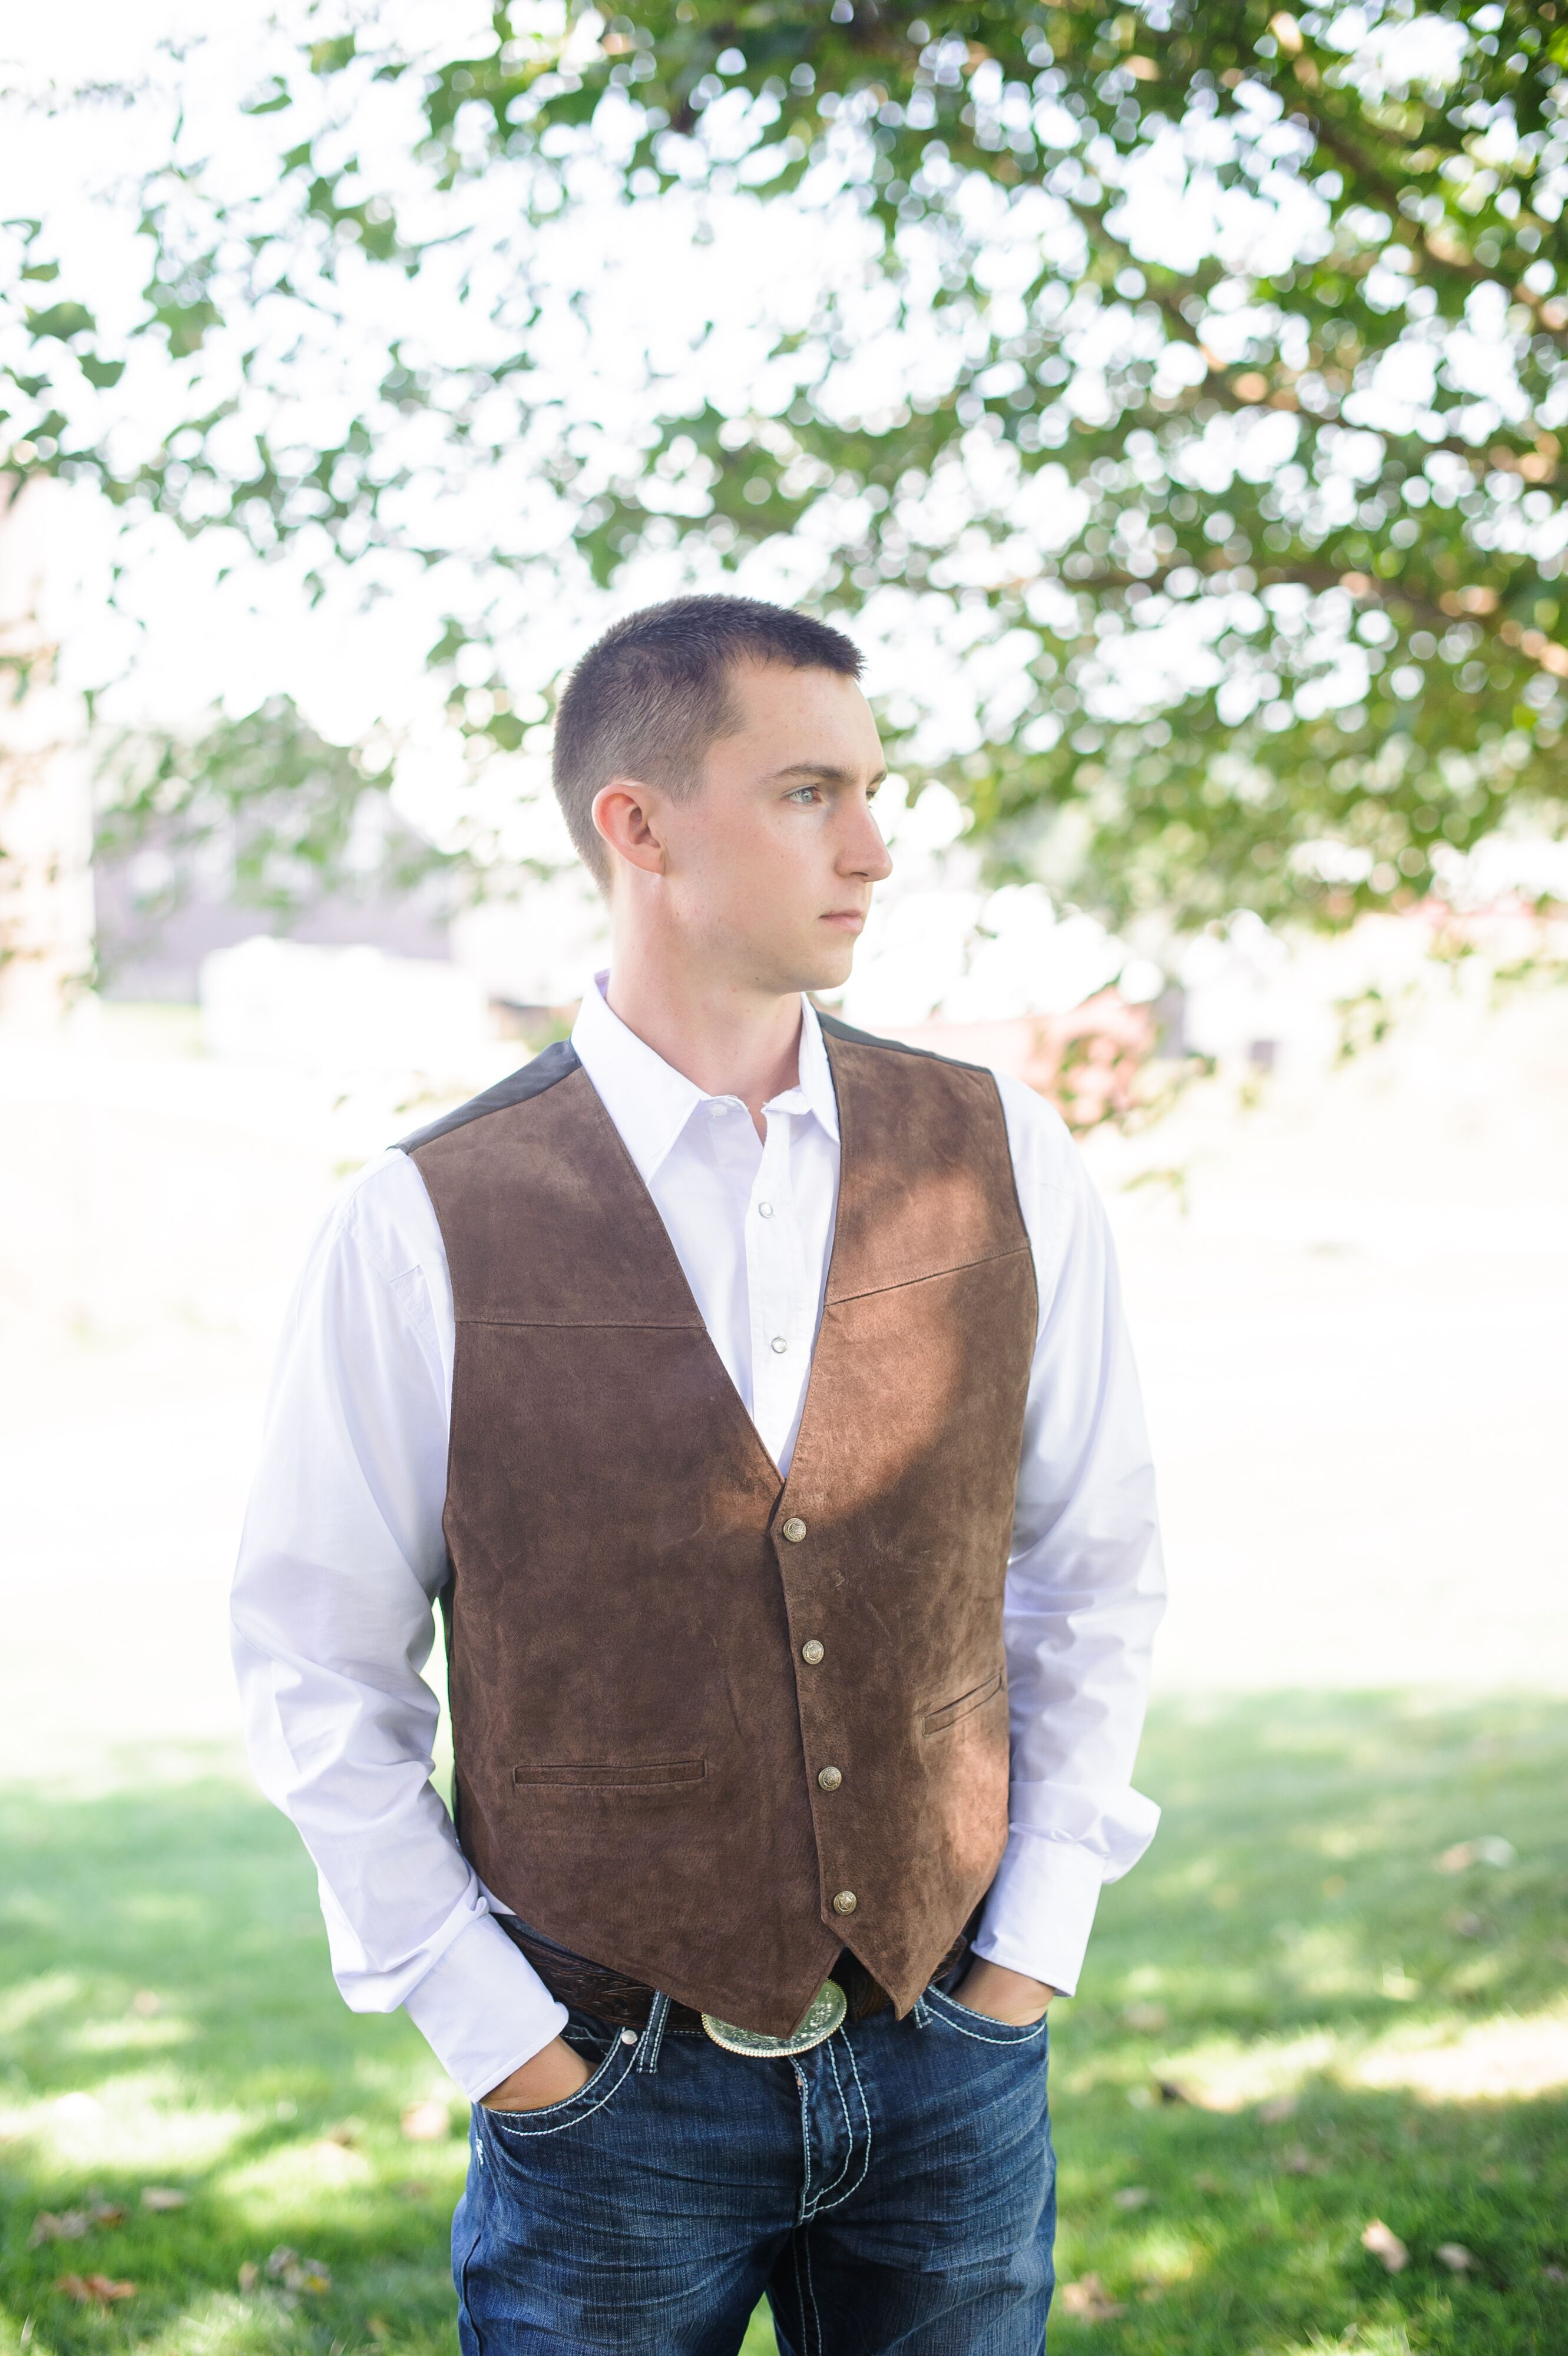 Groom In A Brown Vest And Jeans On Wedding Day